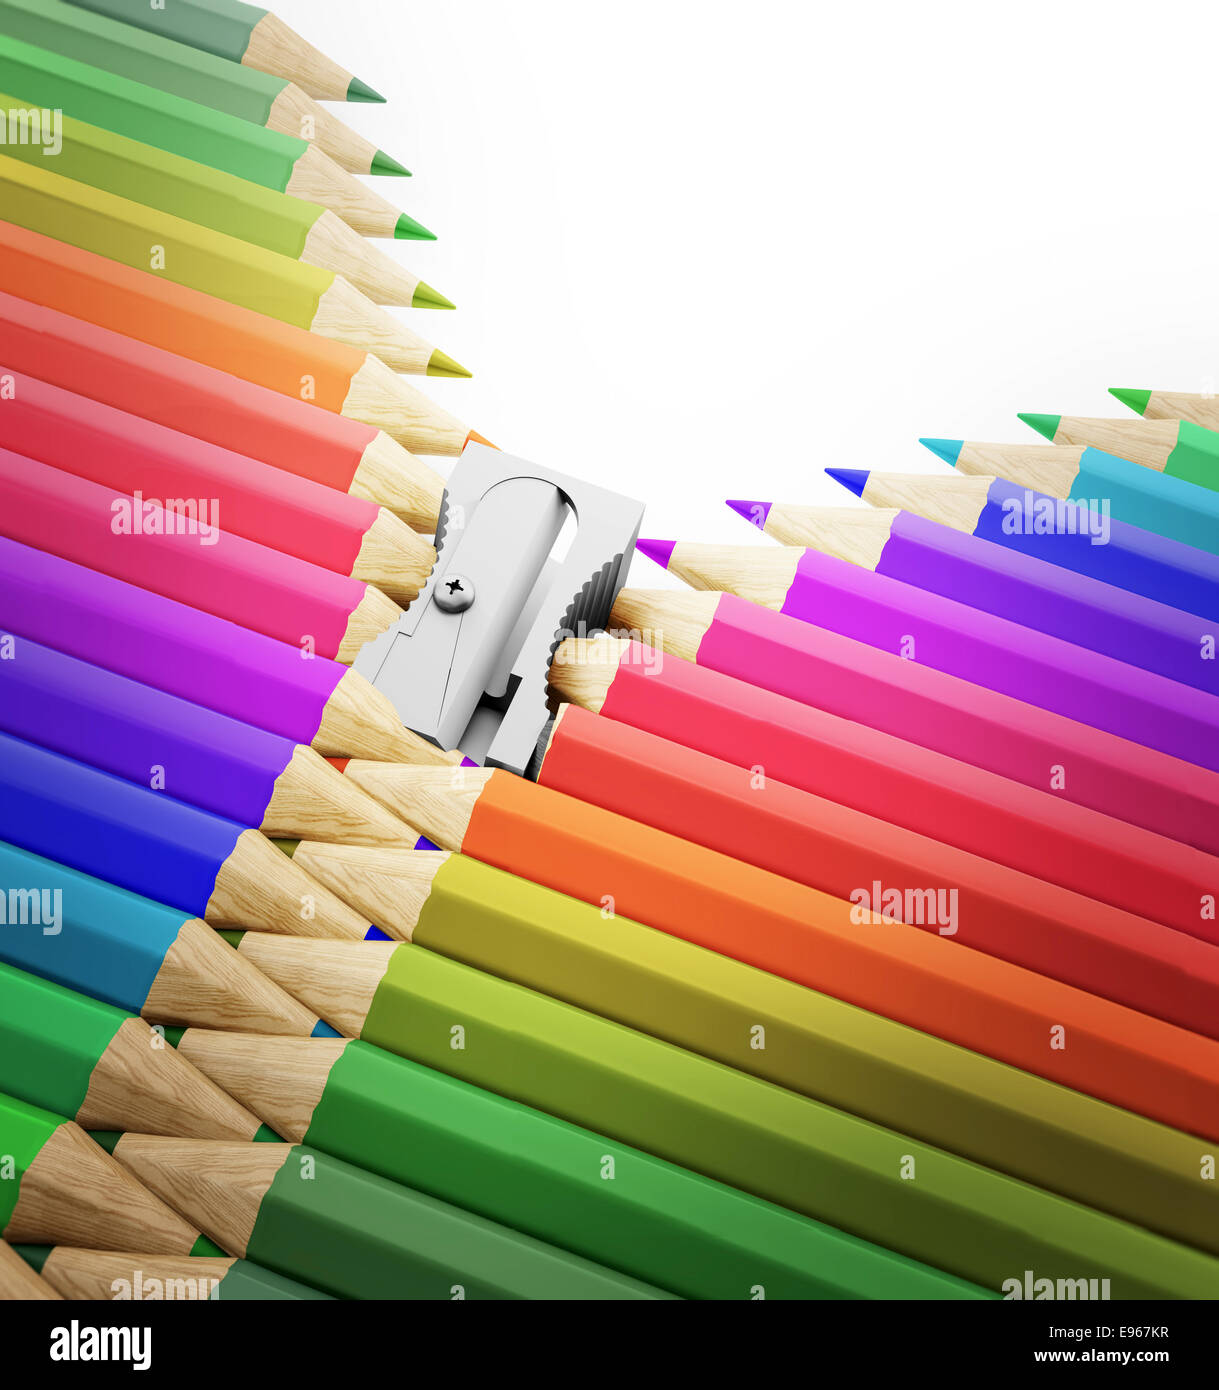 A row of pencils and sharpener forming a zipper - arts, creativity and school illustration Stock Photo